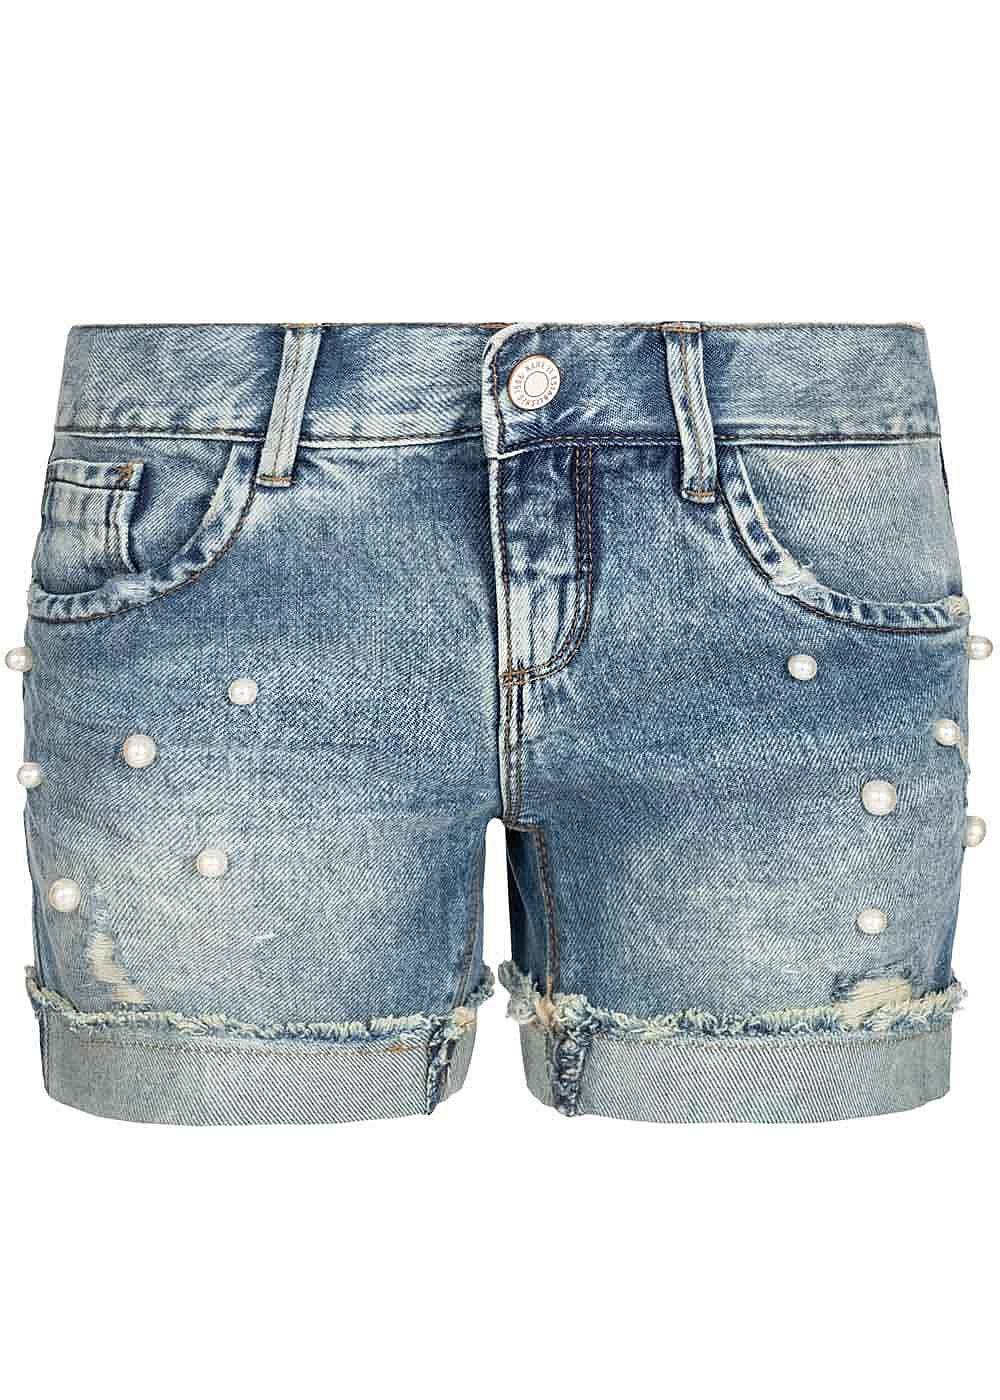 Name It Kids Mädchen Jeans Shorts Deco Pearls 5-Pockets NOOS hell blau denim - Art.-Nr.: 19051692